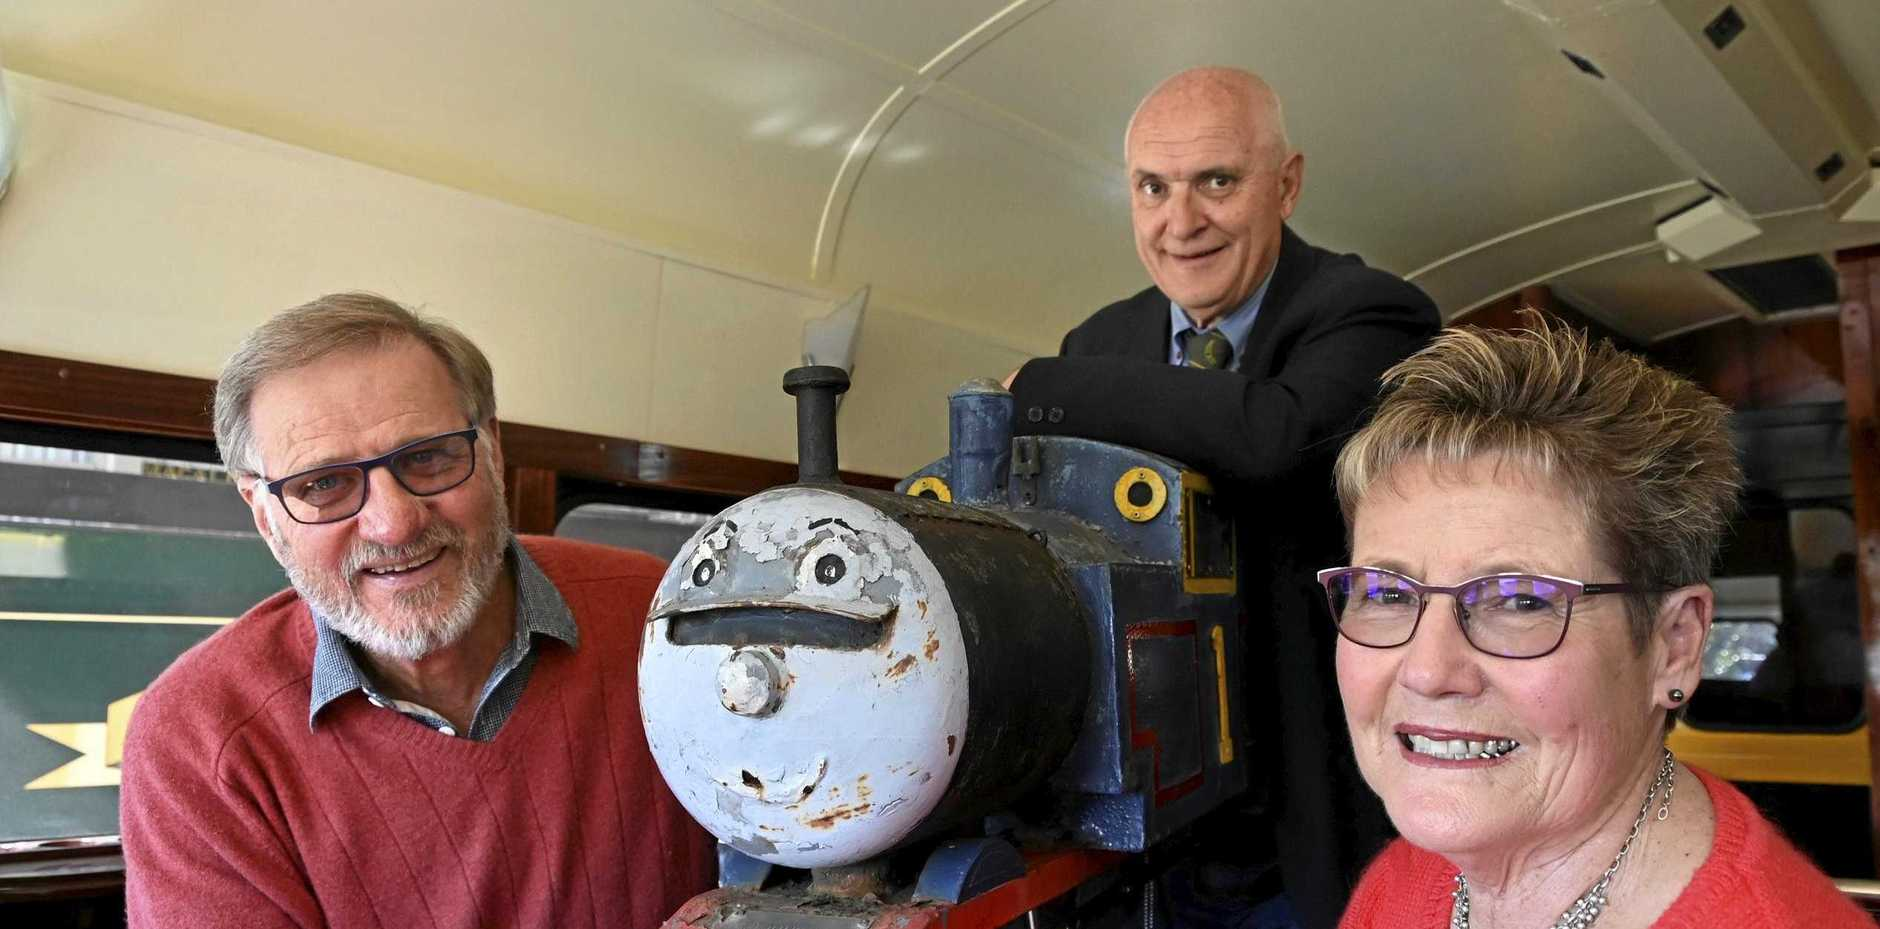 SPECIAL DELIVERY: Retired paediatrician Dr John Cox (left) delivers his unique Thomas the Tank Engine letterbox to DownsSteam's tour guide Robert Ketton and president Ros Scotney.